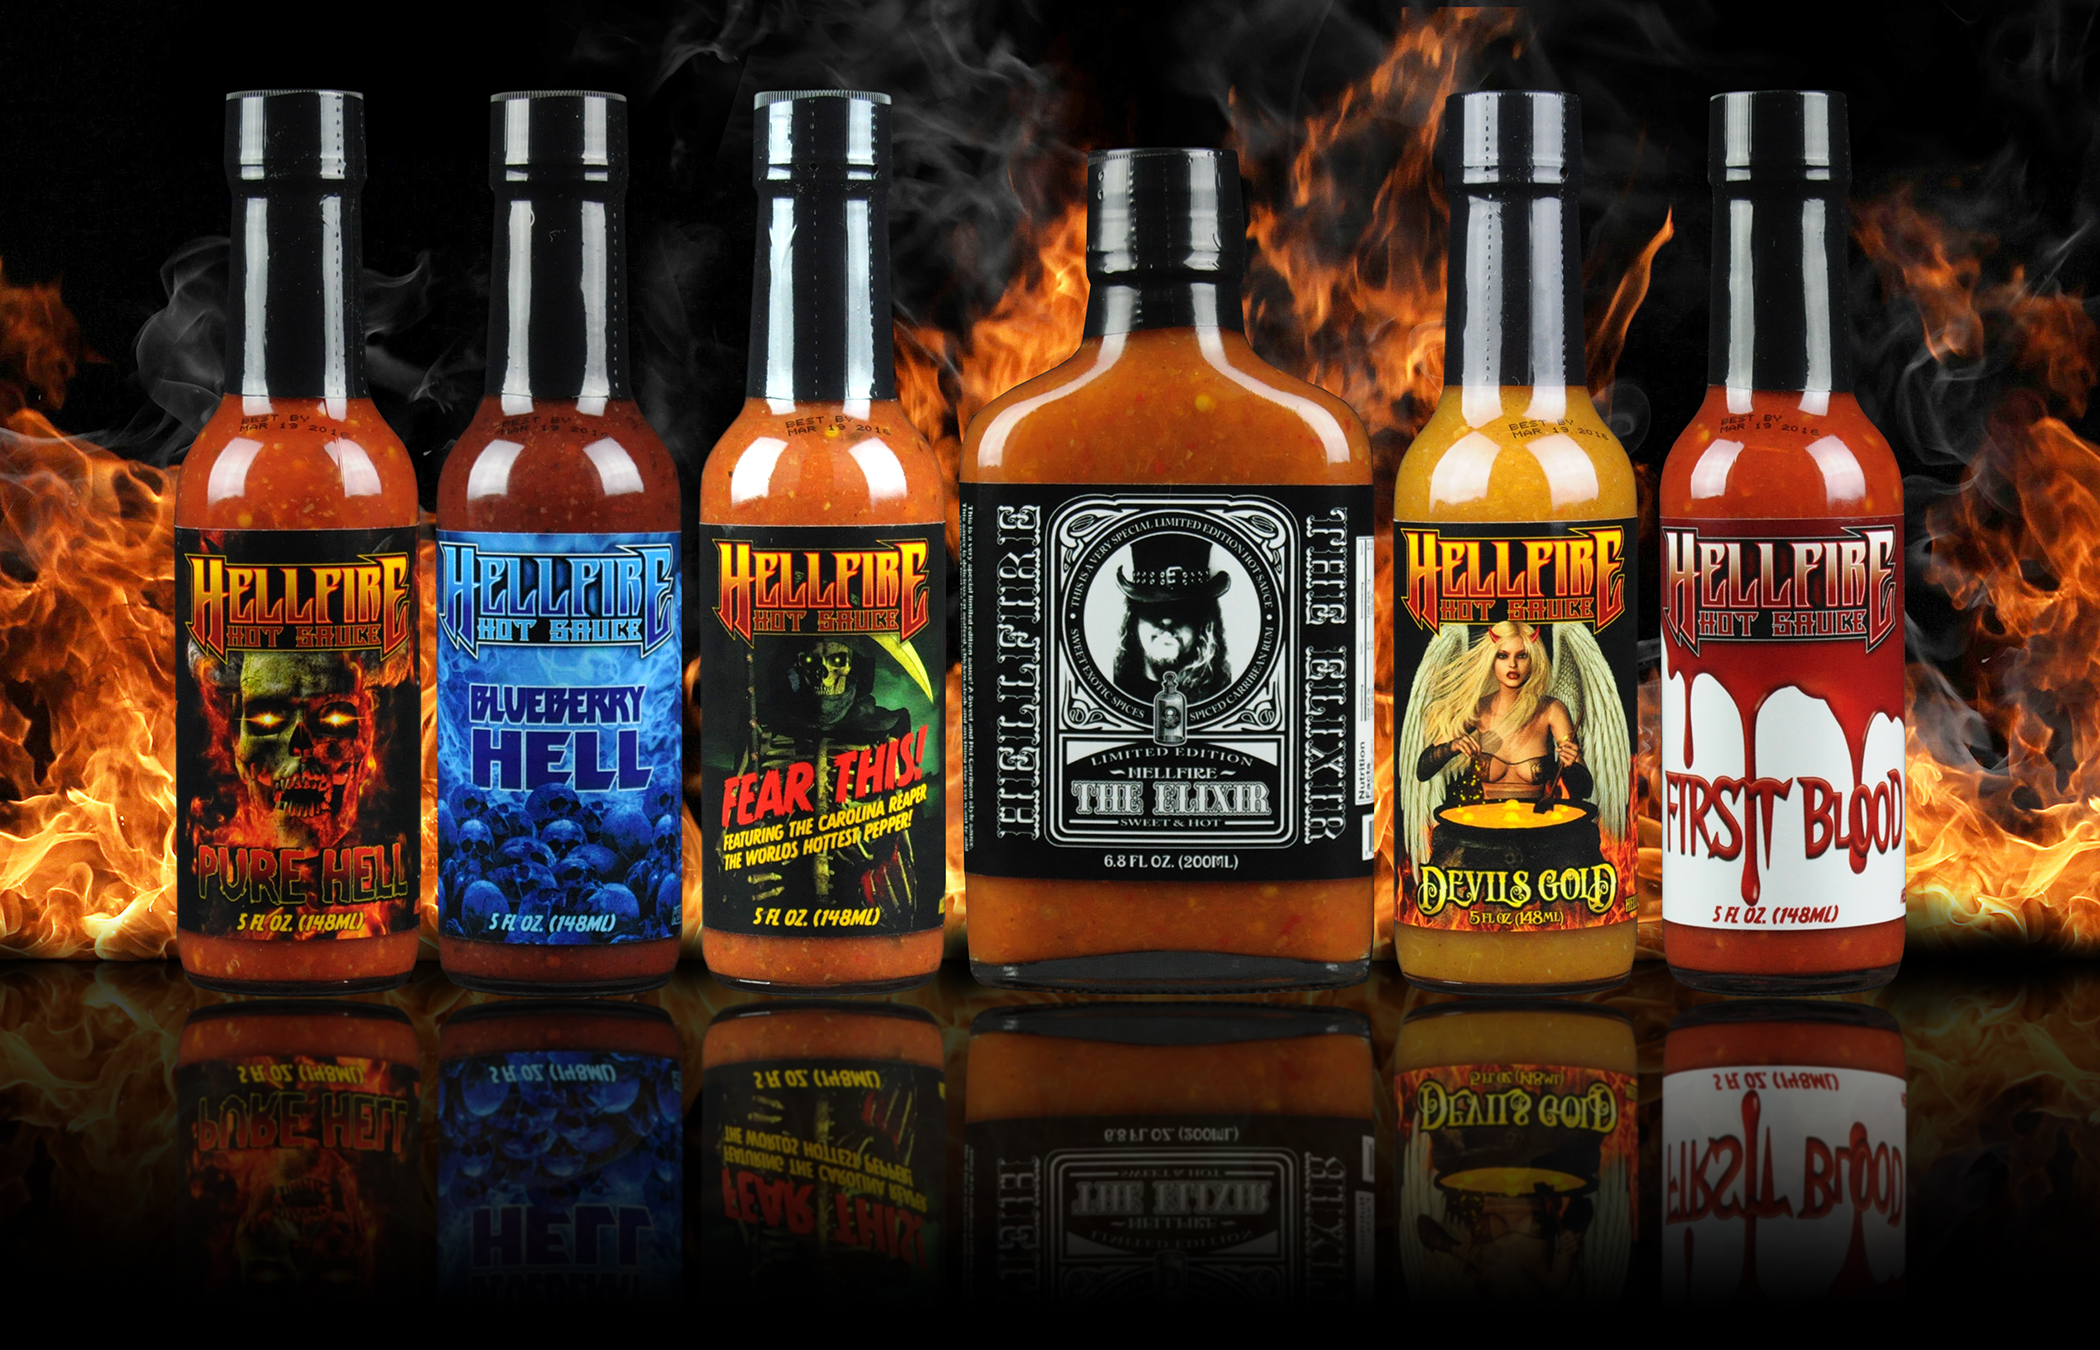 Hot Sauces For Sale - Hottest Hot Sauces | Hellfire Hot Sauce